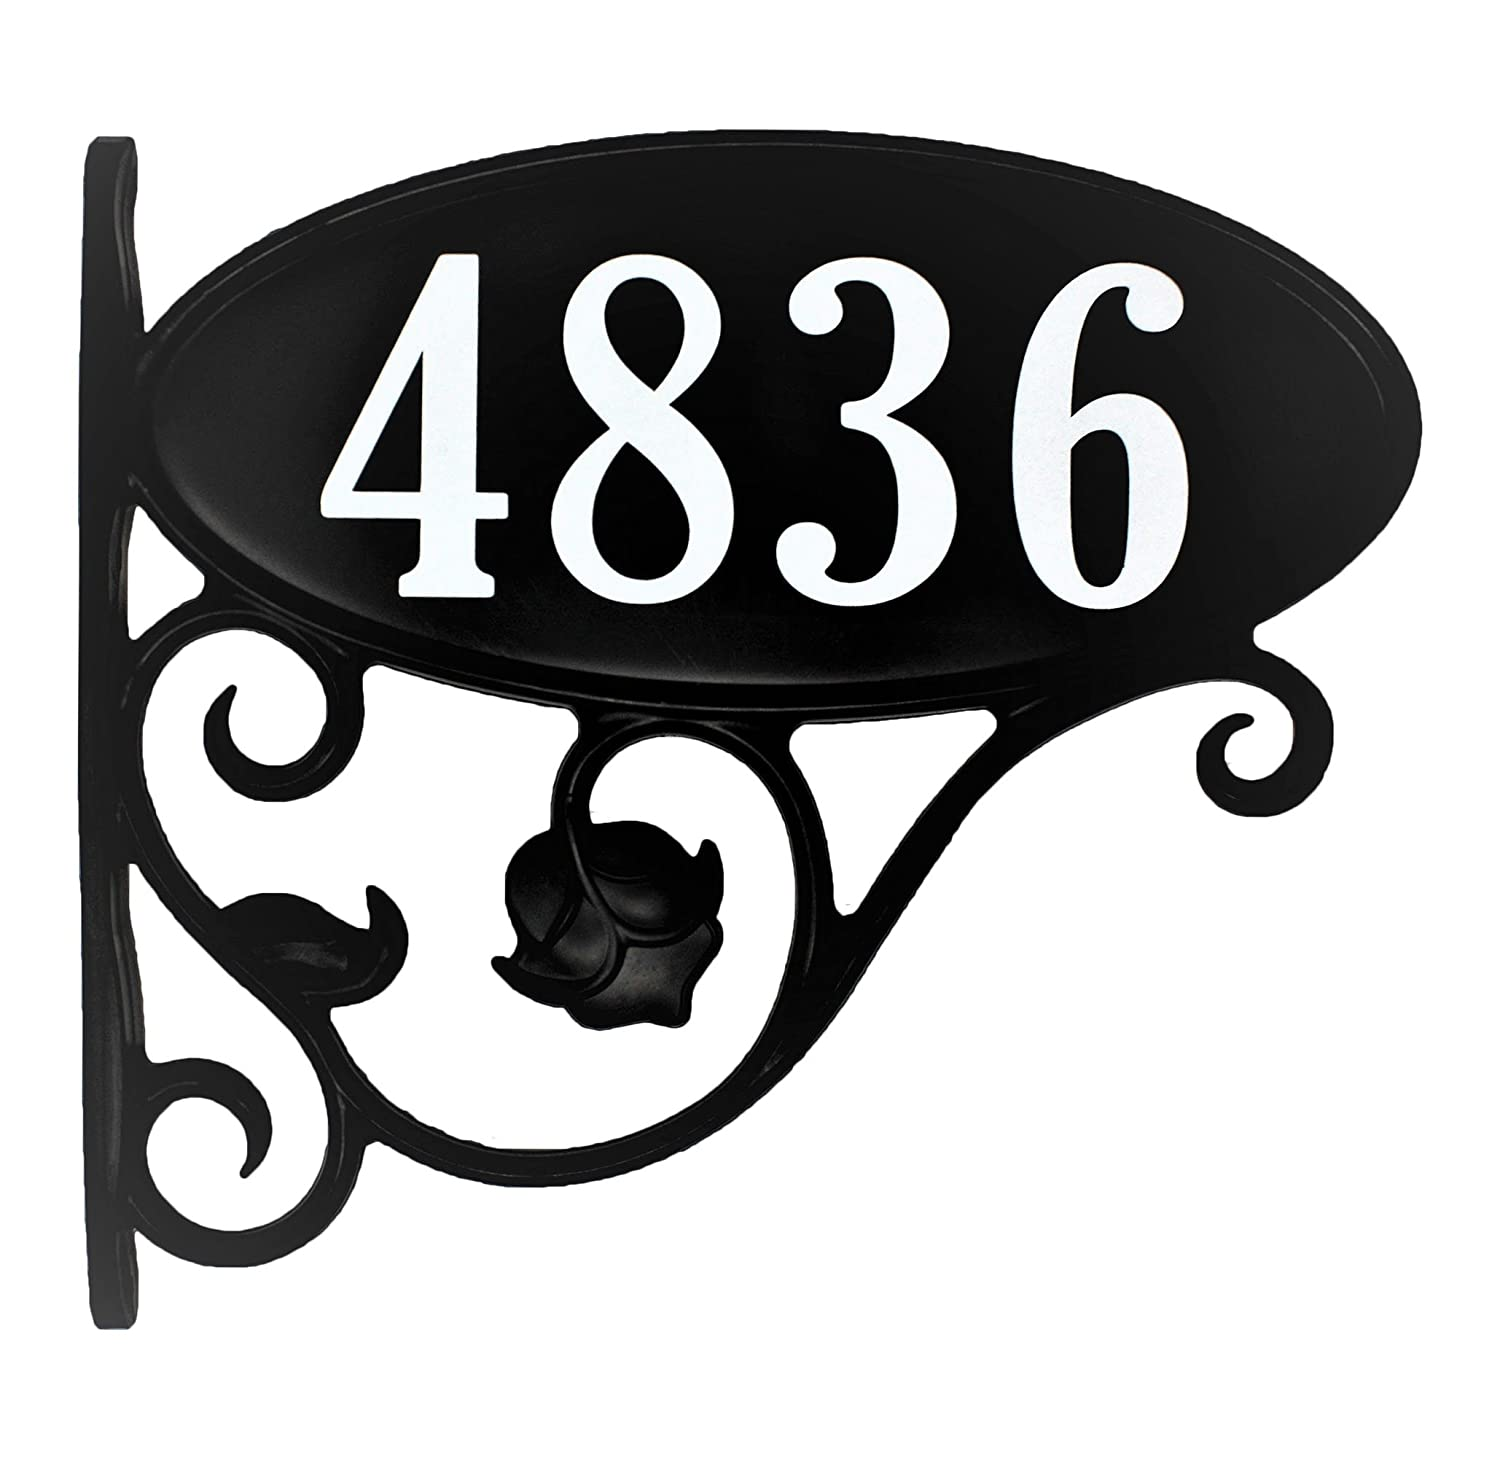 USA Hand-Crafted Custom Made Double Sided Park Place Super Reflective Mailbox Address Sign - Large 4' Easy to Read Numbers